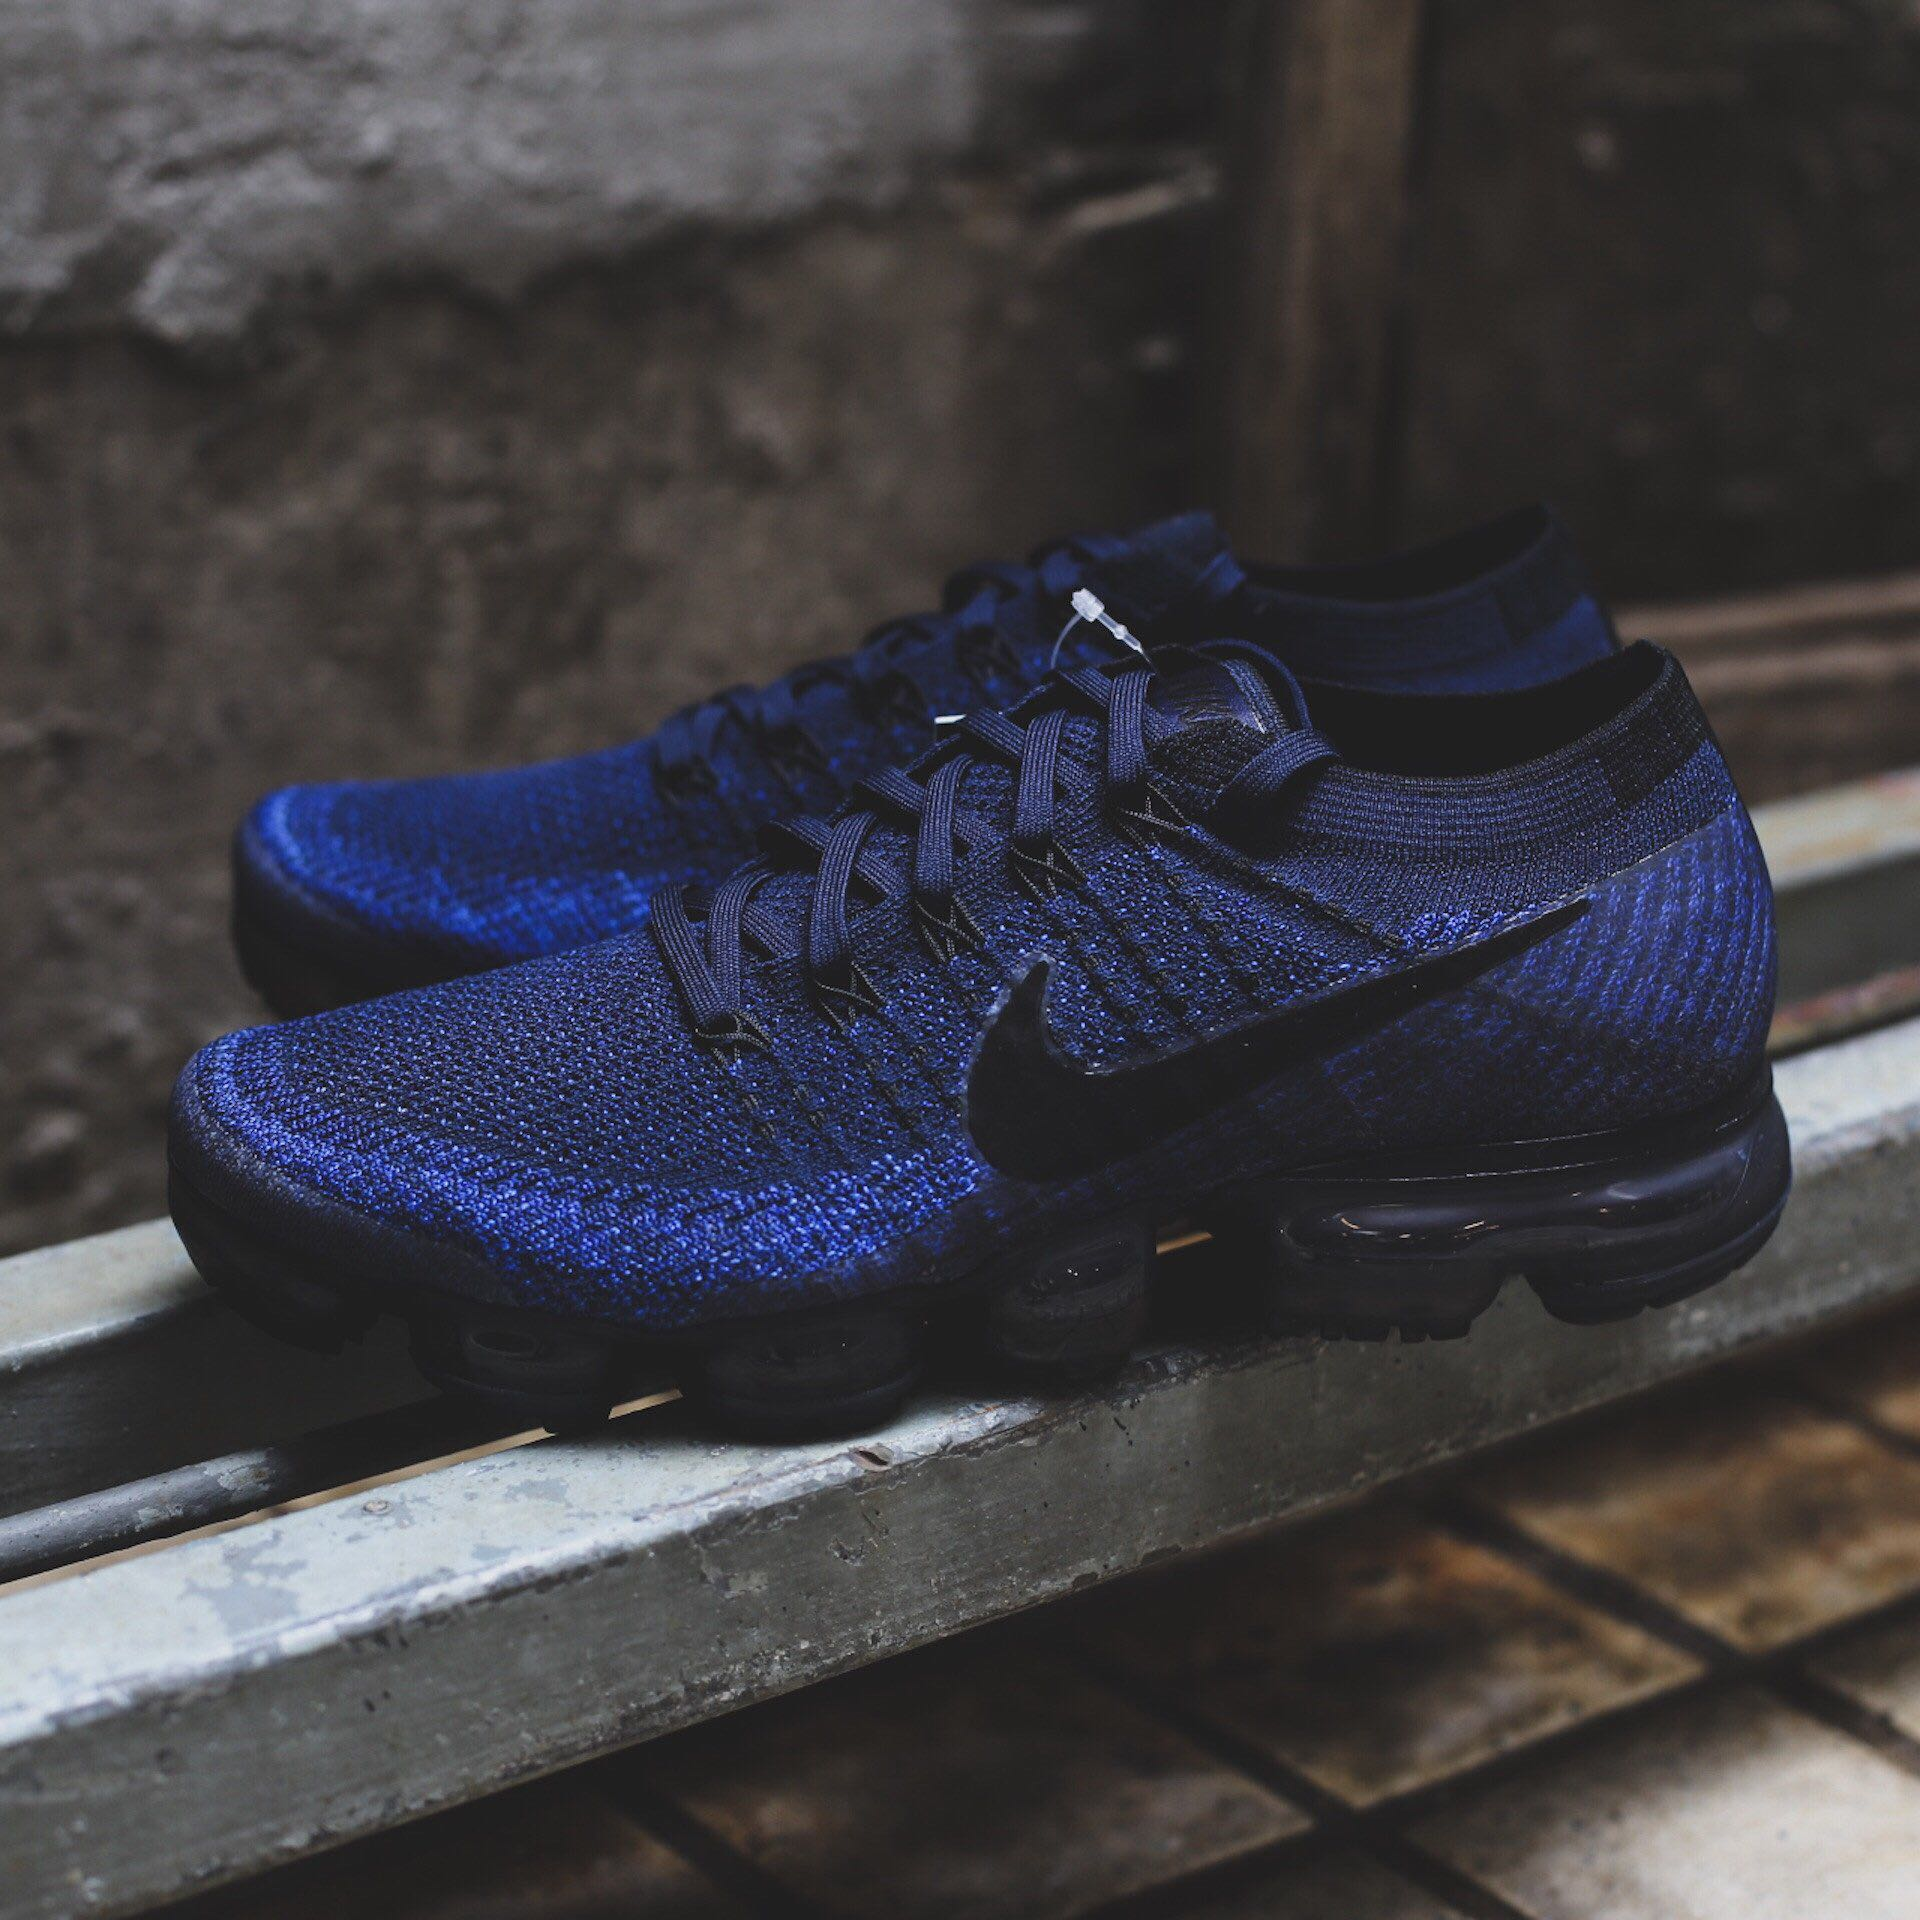 c32dd88ba0192 $200 Nike Air Vapormax Midnight Navy, Men's Fashion, Footwear on Carousell